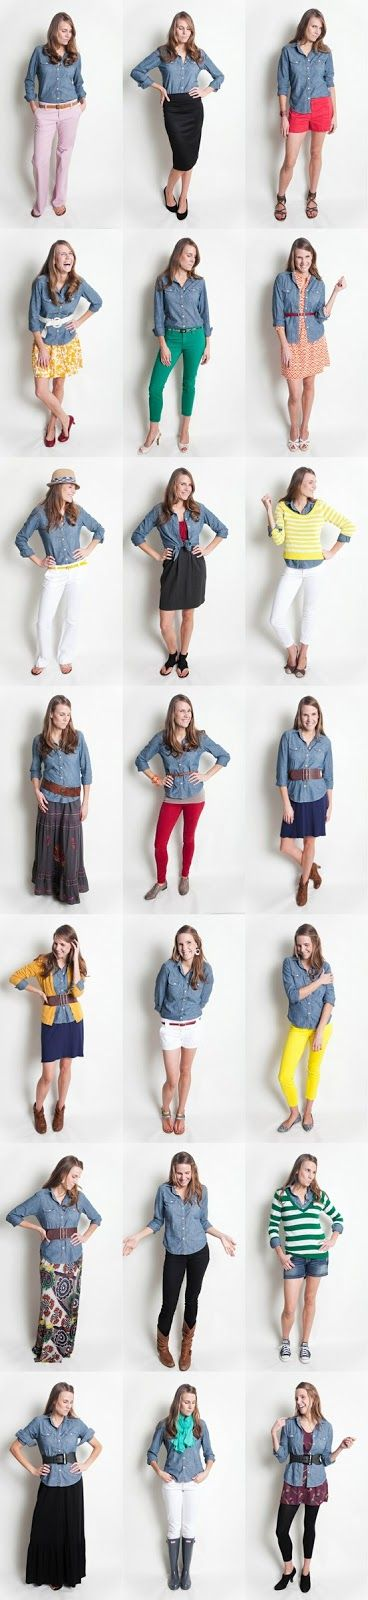 One Creative Momma: How to wear a chambray shirt  I'm obsessed with chambray shirts!  So many options!